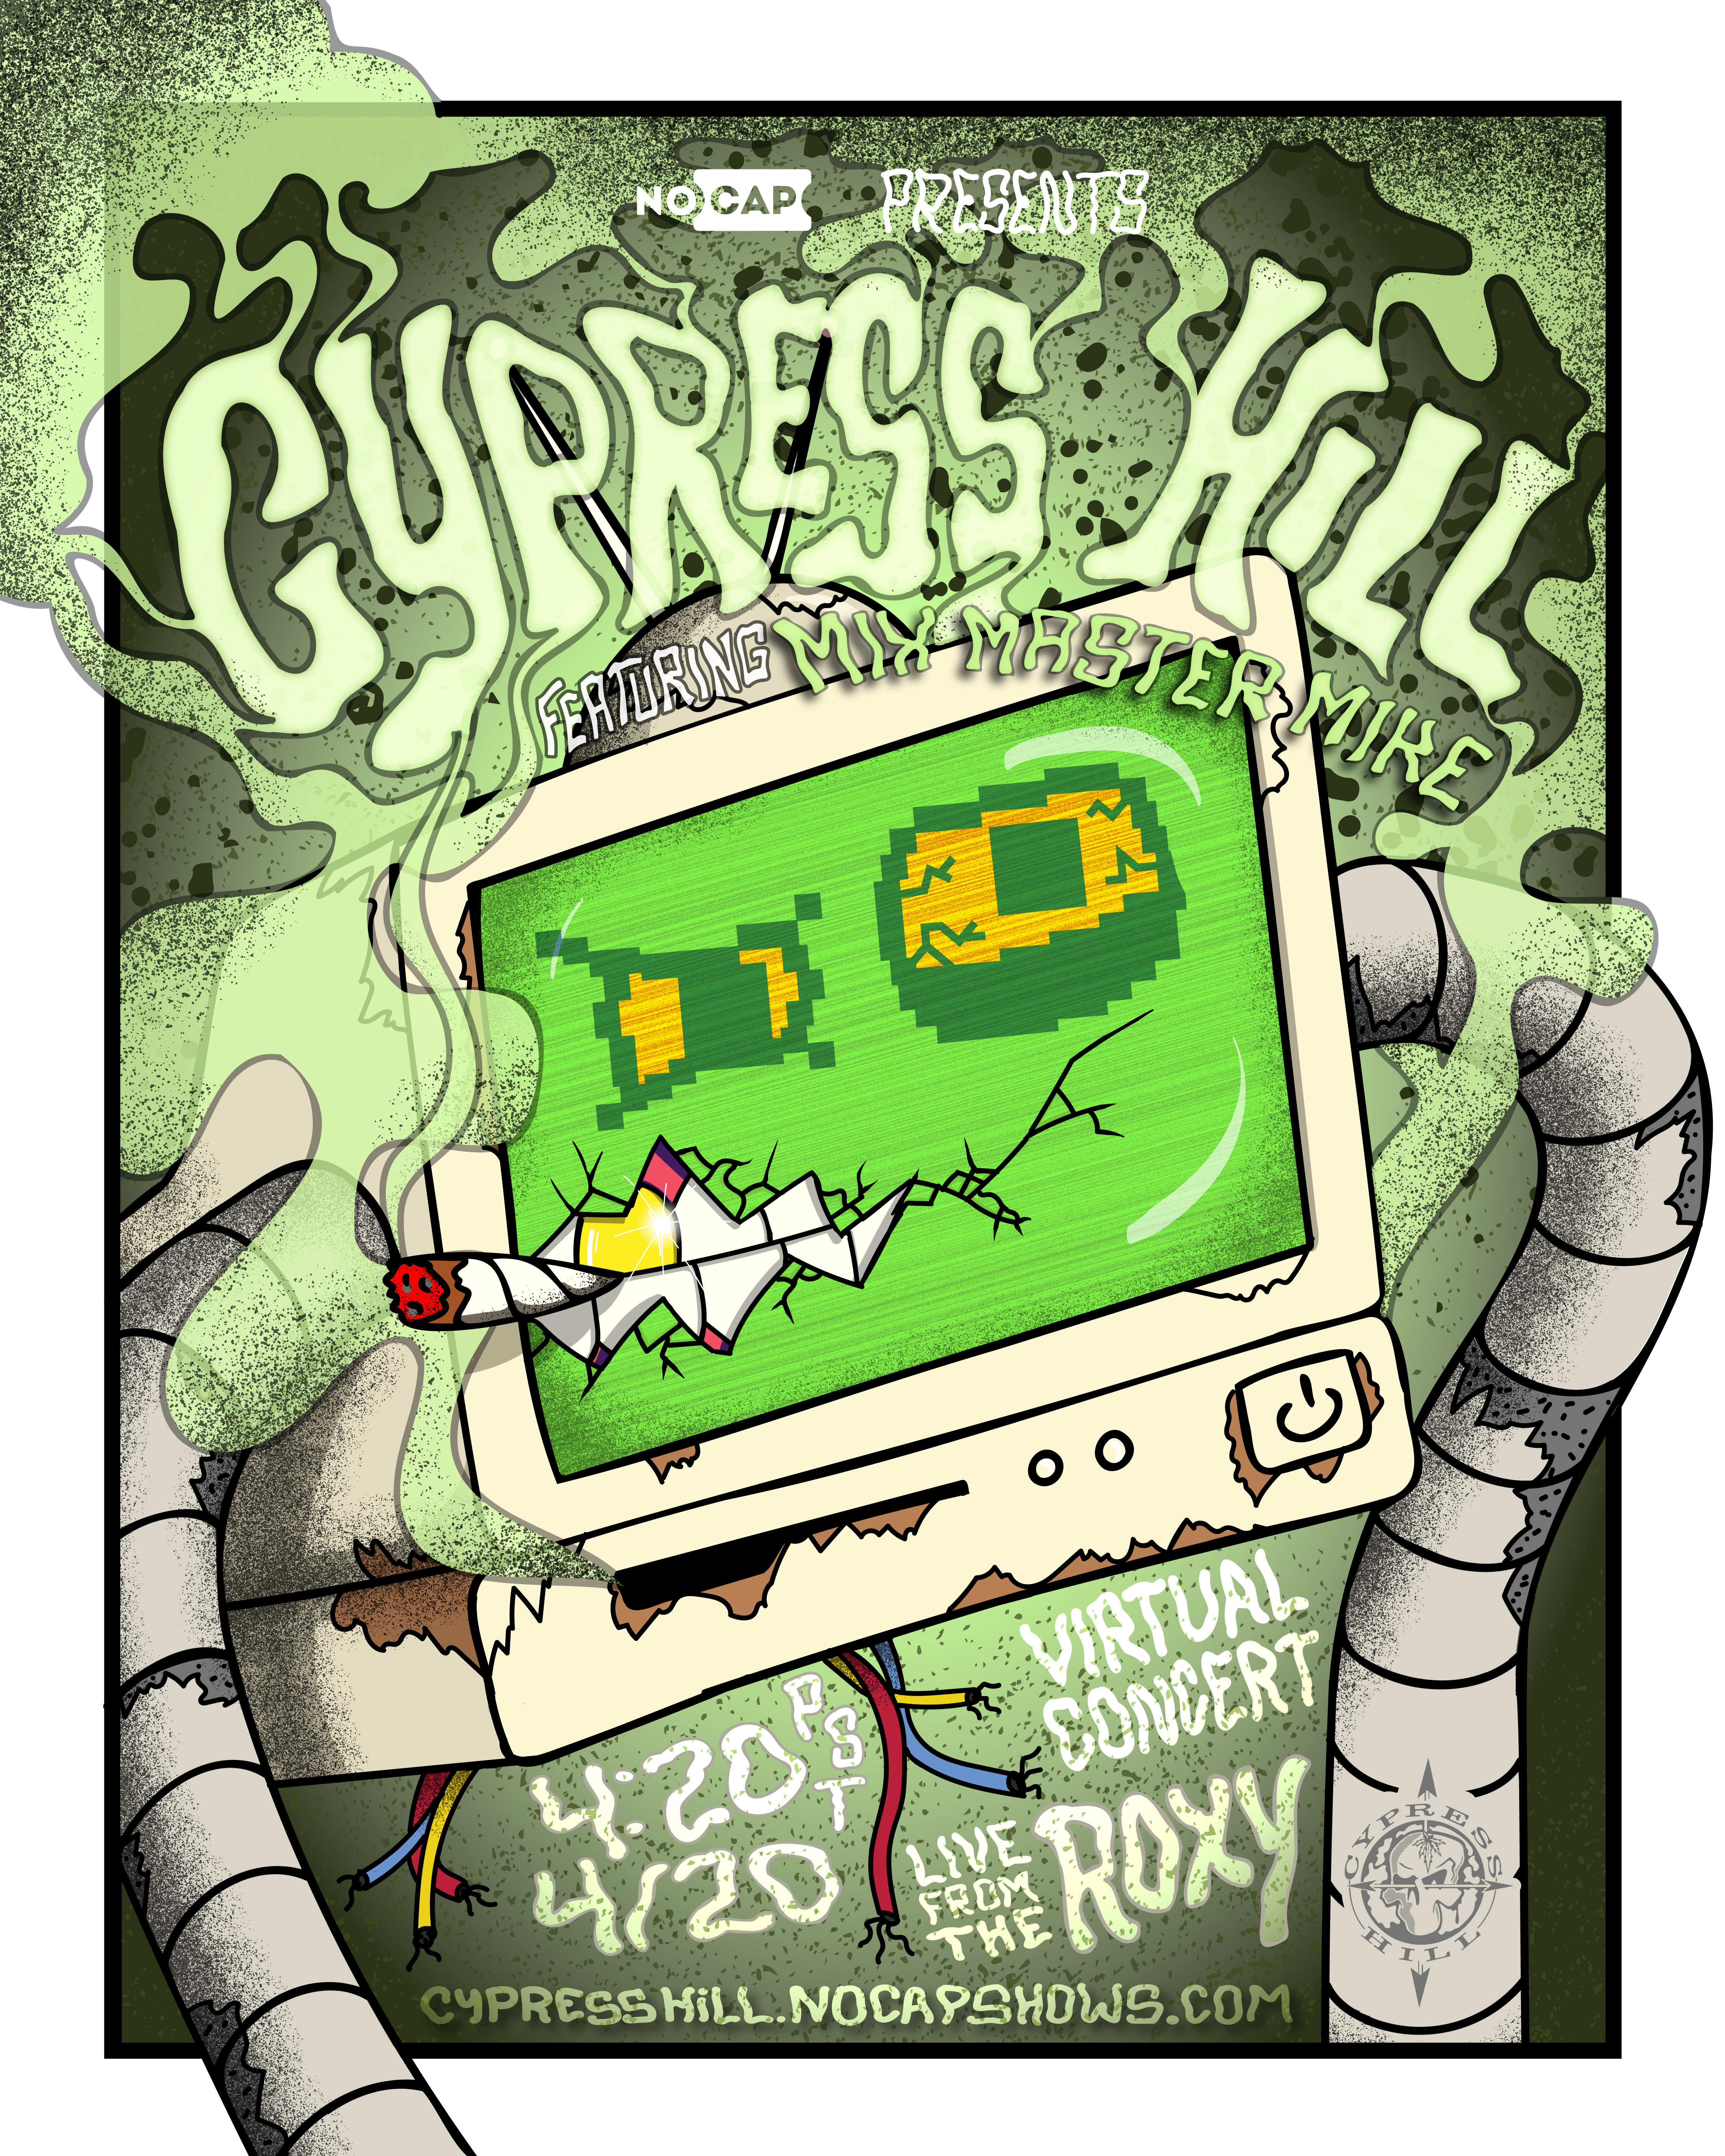 Cypress Hill 420 Live Stream